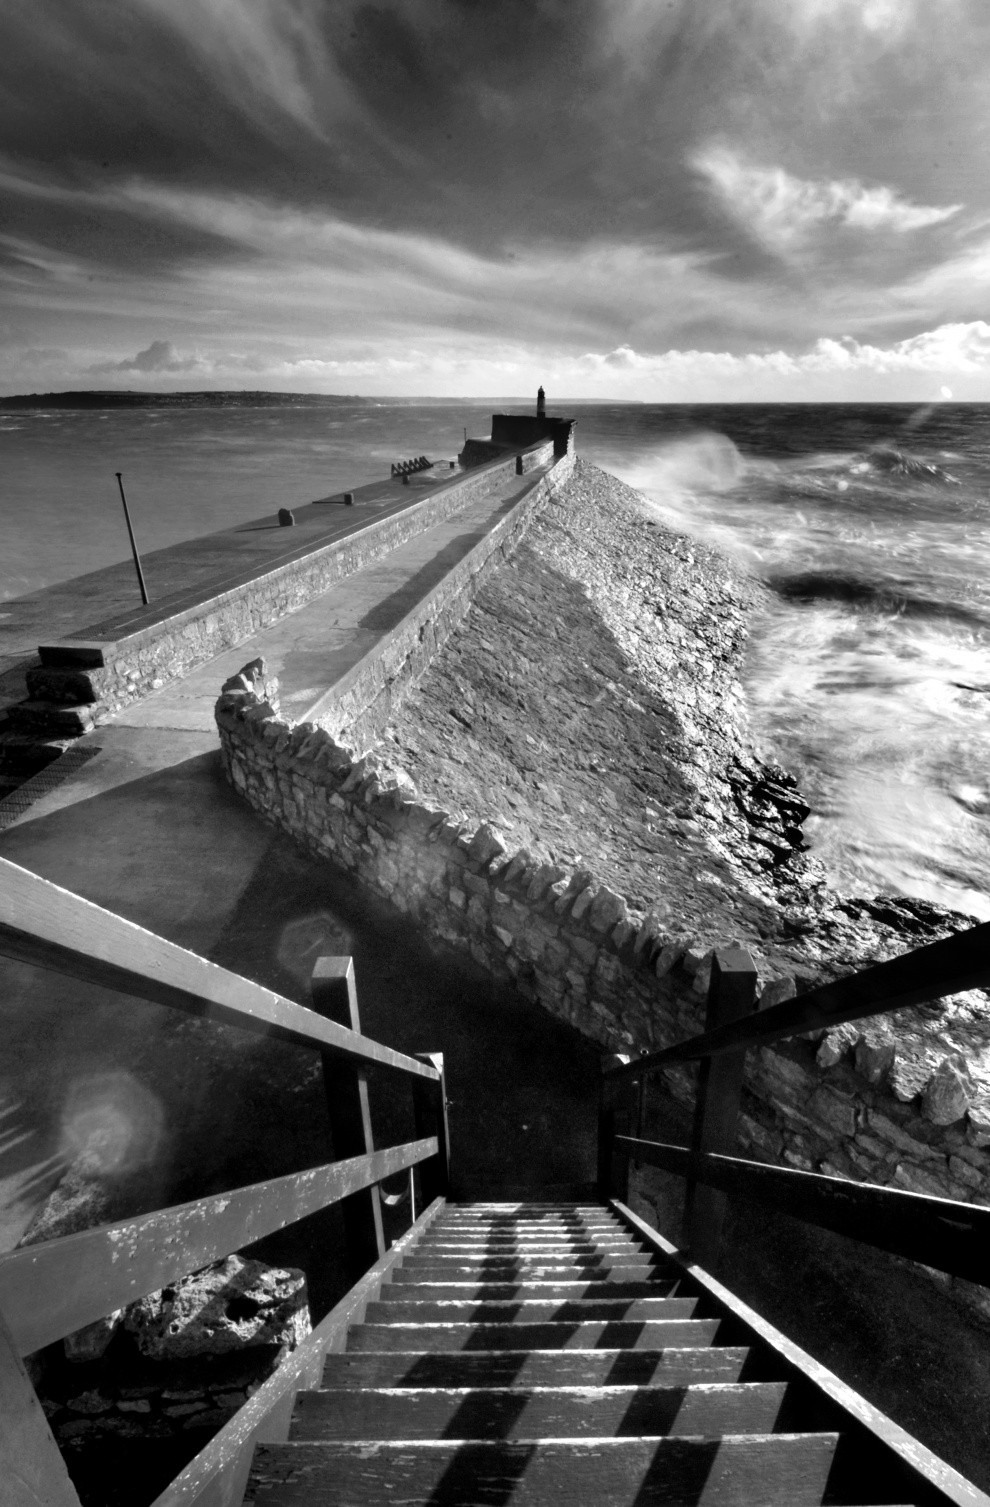 Pete Britton's photo of Porthcawl - Coney Beach